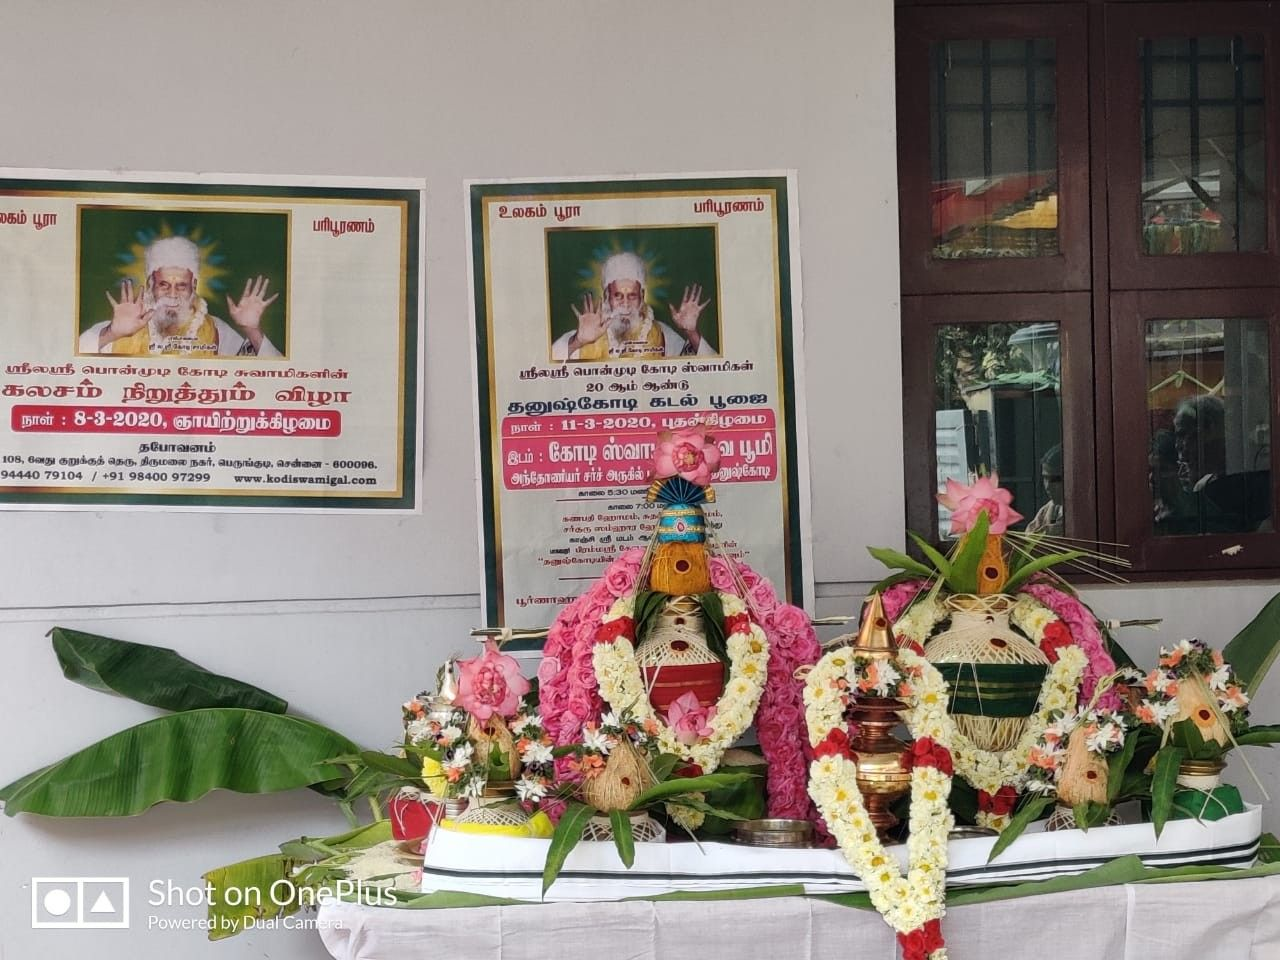 Pin by Curiosity Publishers on Kodi Swamigal in 2020 | Christmas